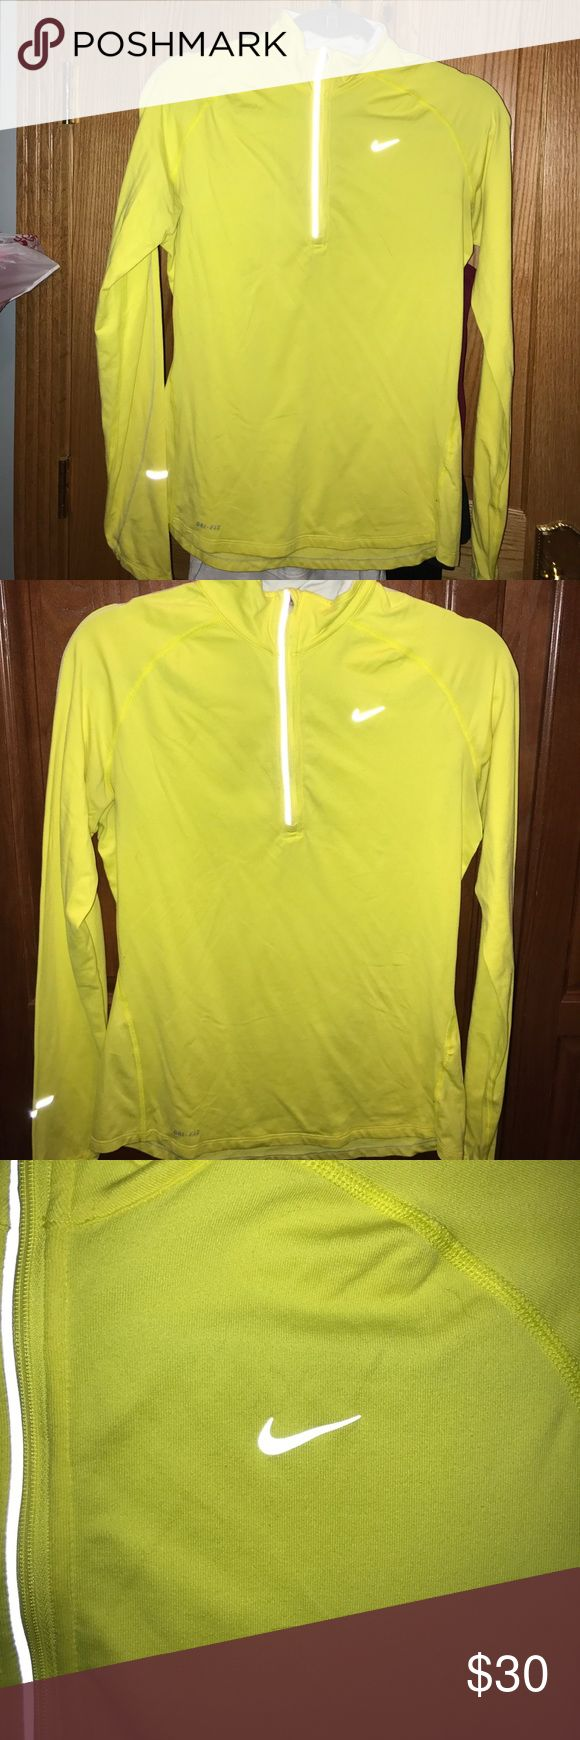 NIKE WOMENS YELLOW 1/4 ZIP Nike Women's Yellow 1/4 Zip, Fitted, Reflective Nike Tops Sweatshirts & Hoodies